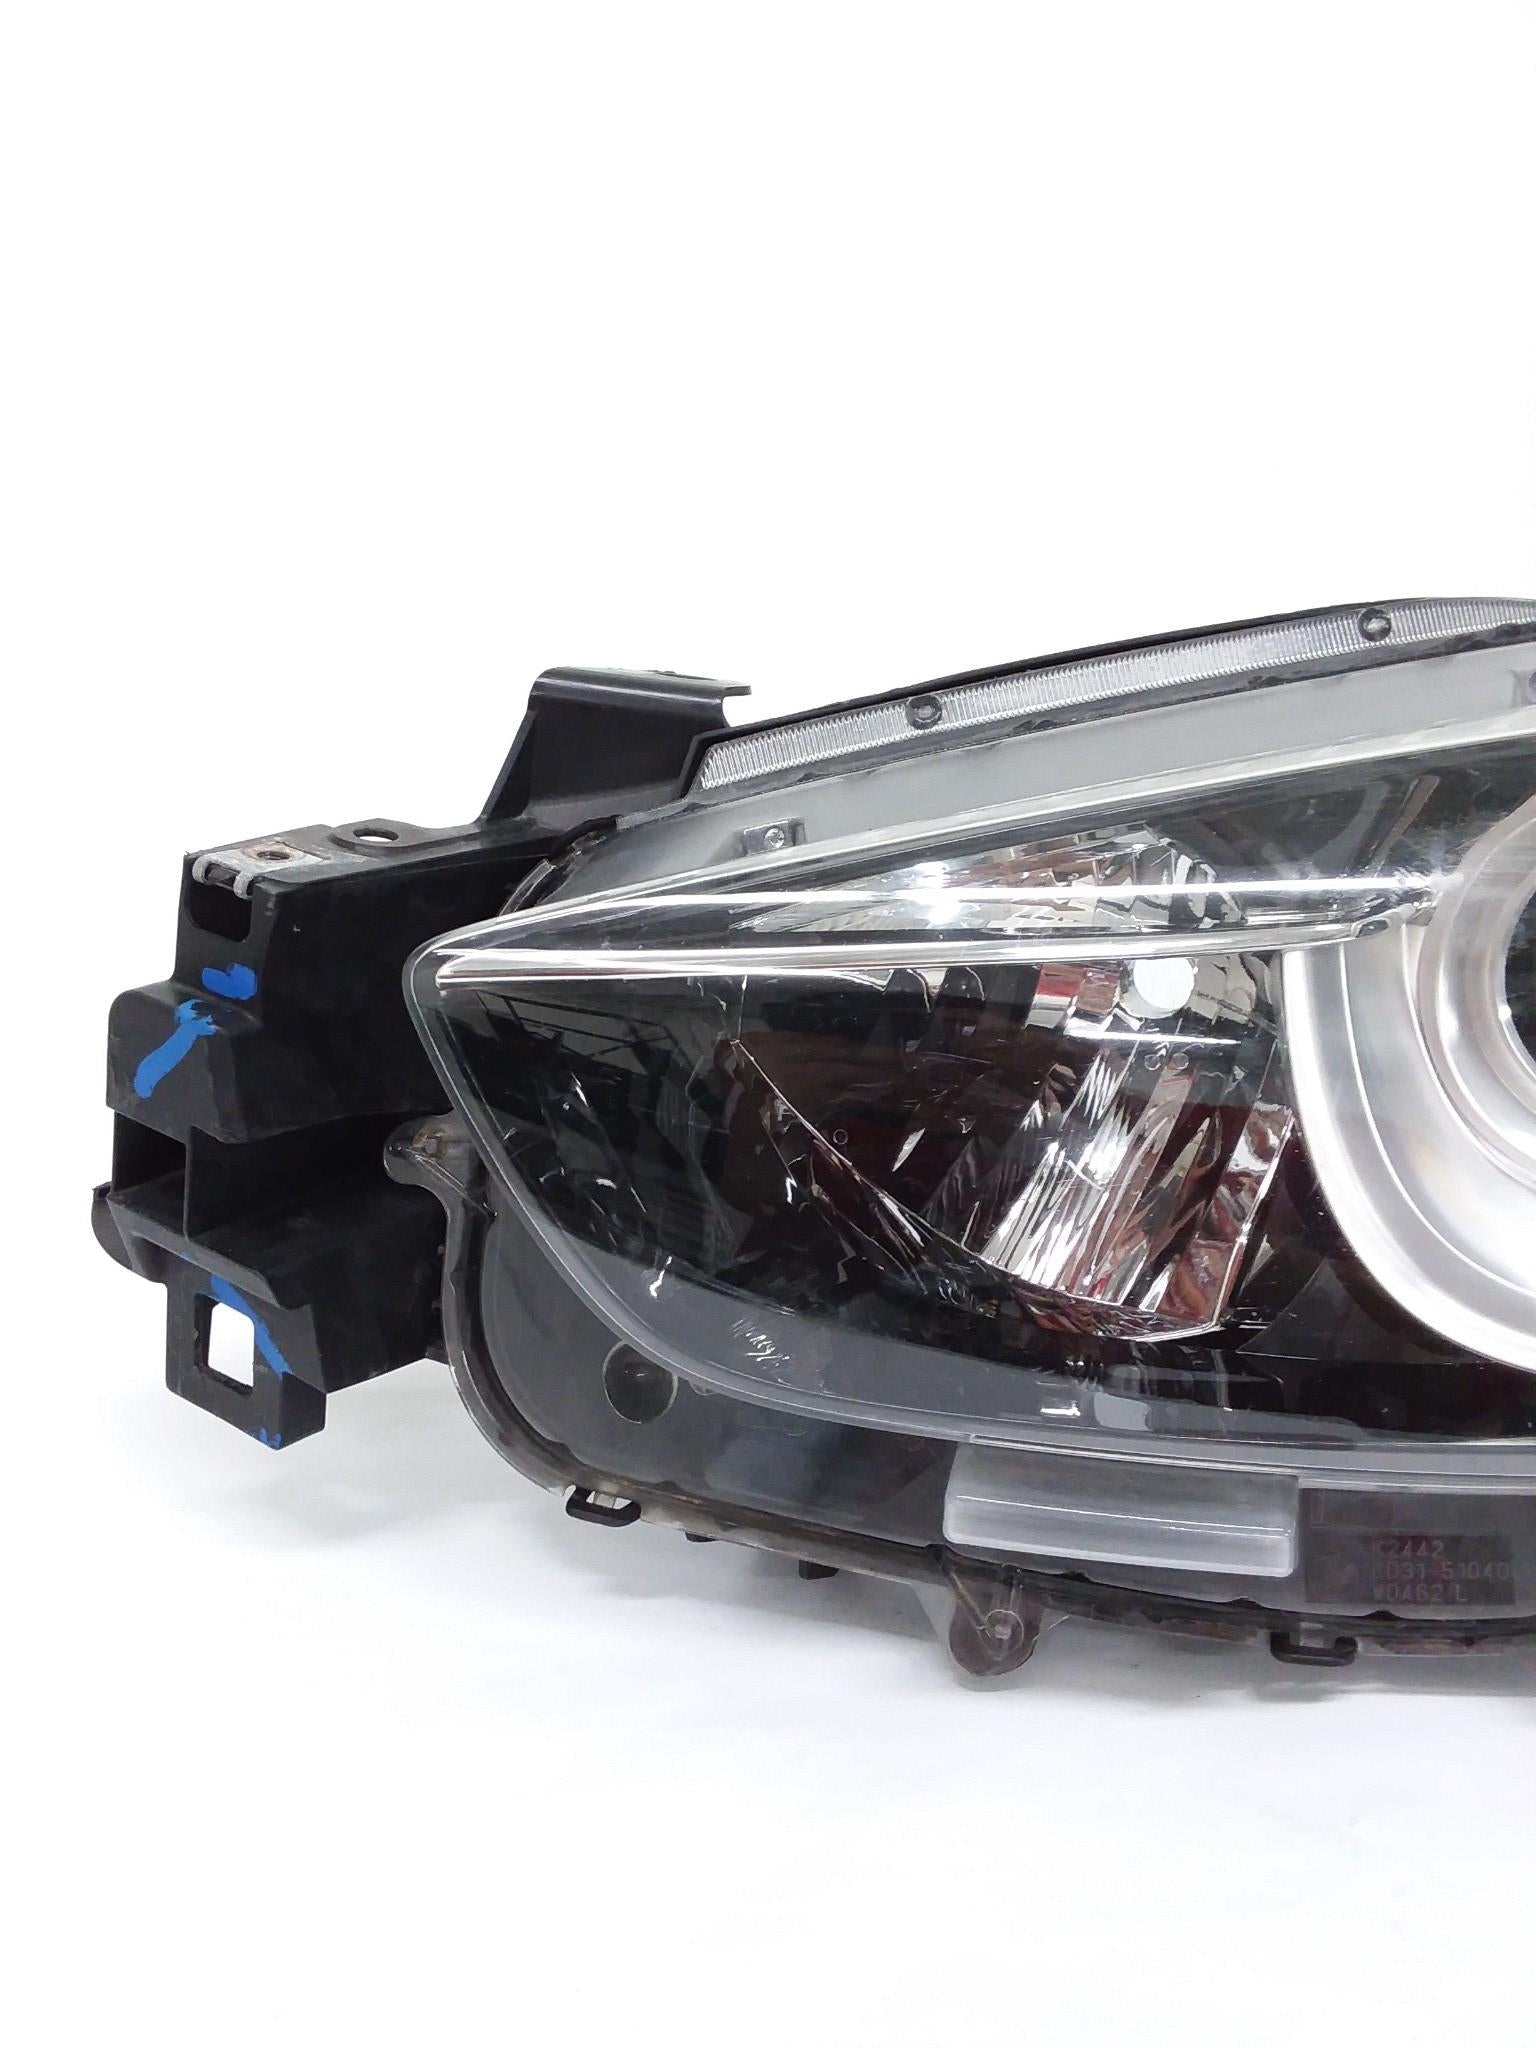 MAZDA 3 LEFT DRIVER LH SIDE HEADLIGHT HALOGEN 2014 2015 KJ0151040 OEM - CR Auto Parts